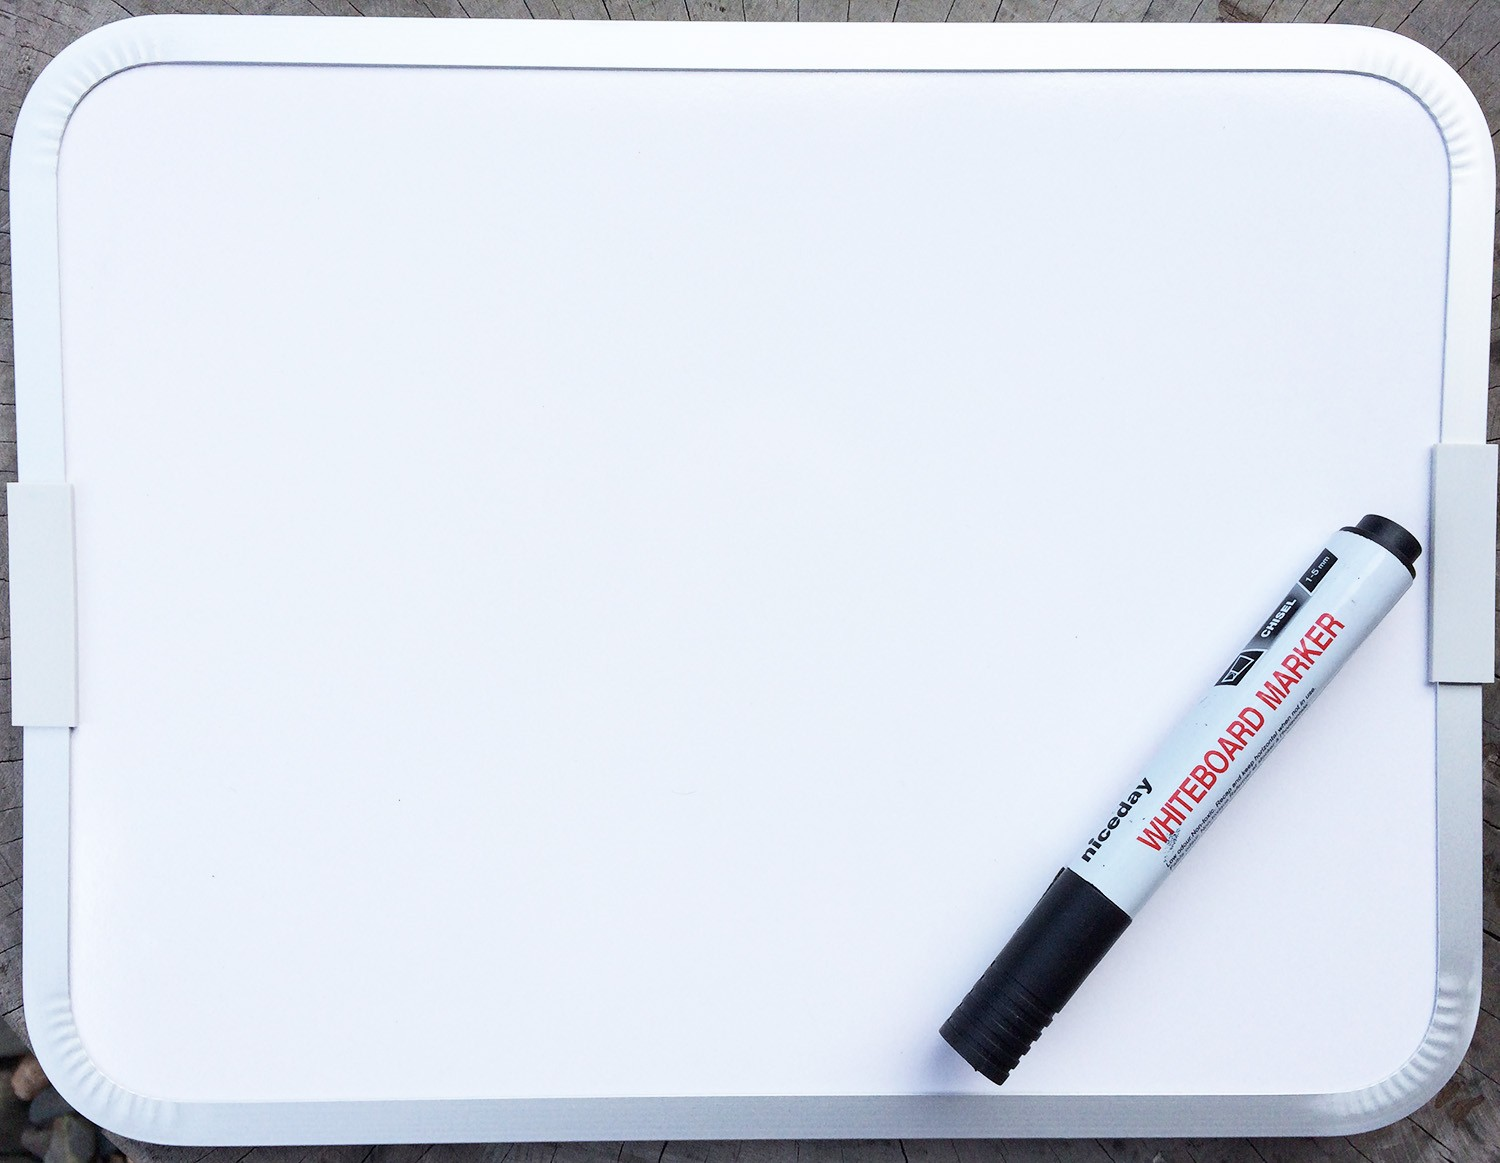 Easy Wipe Magnetic Double Sided Whiteboard and Dry Erase